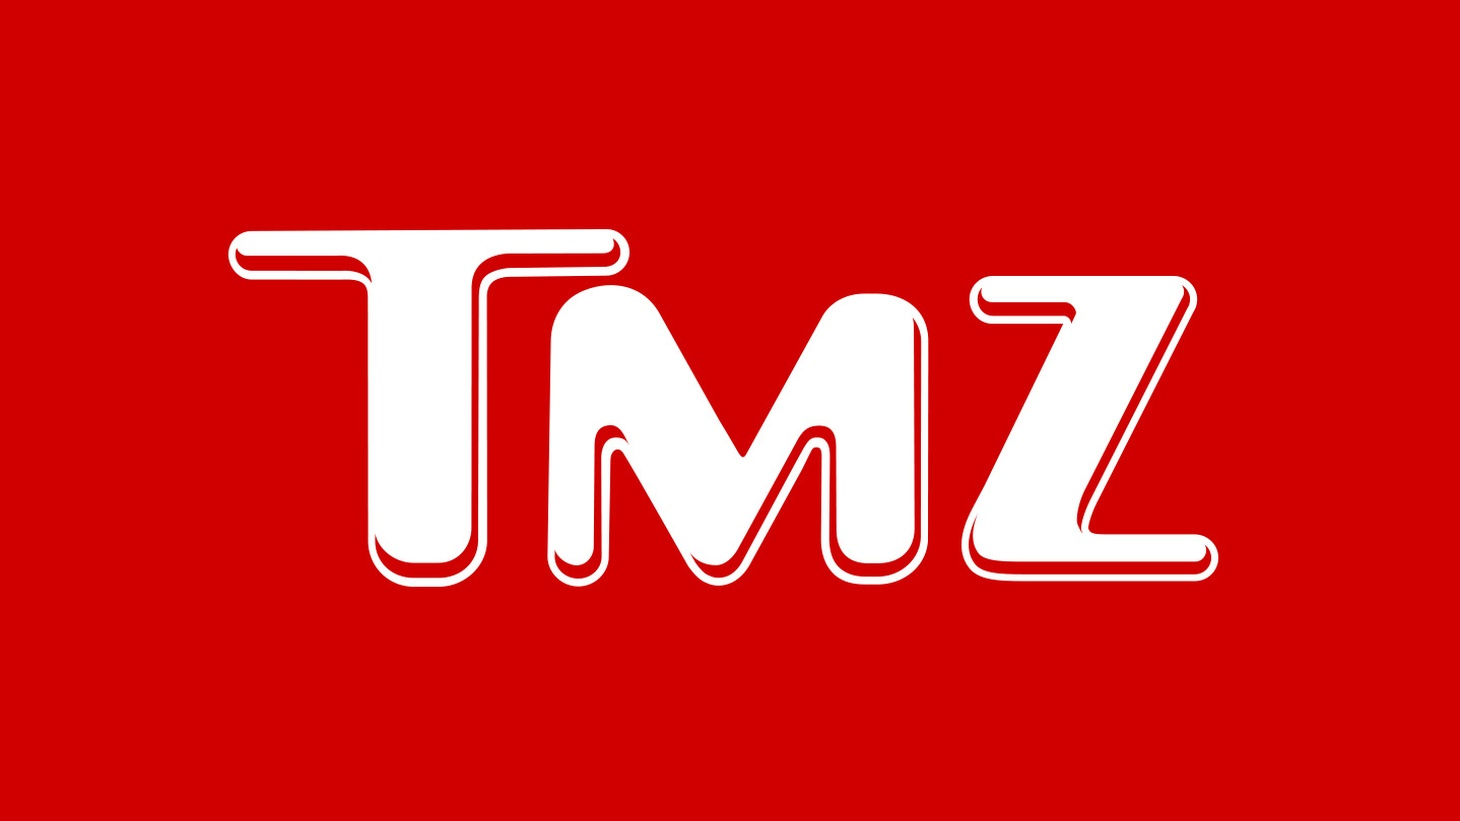 Mel Gibson, Tiger Woods and other celebrities have had their careers interrupted by TMZ, a 10-year-old gossip website, TV and radio show based in Los Angeles that has caused the sale of an NBA franchise and exposed NFL policies on domestic abuse. Is TMZ also revealing the shortcomings of the mainstream media?